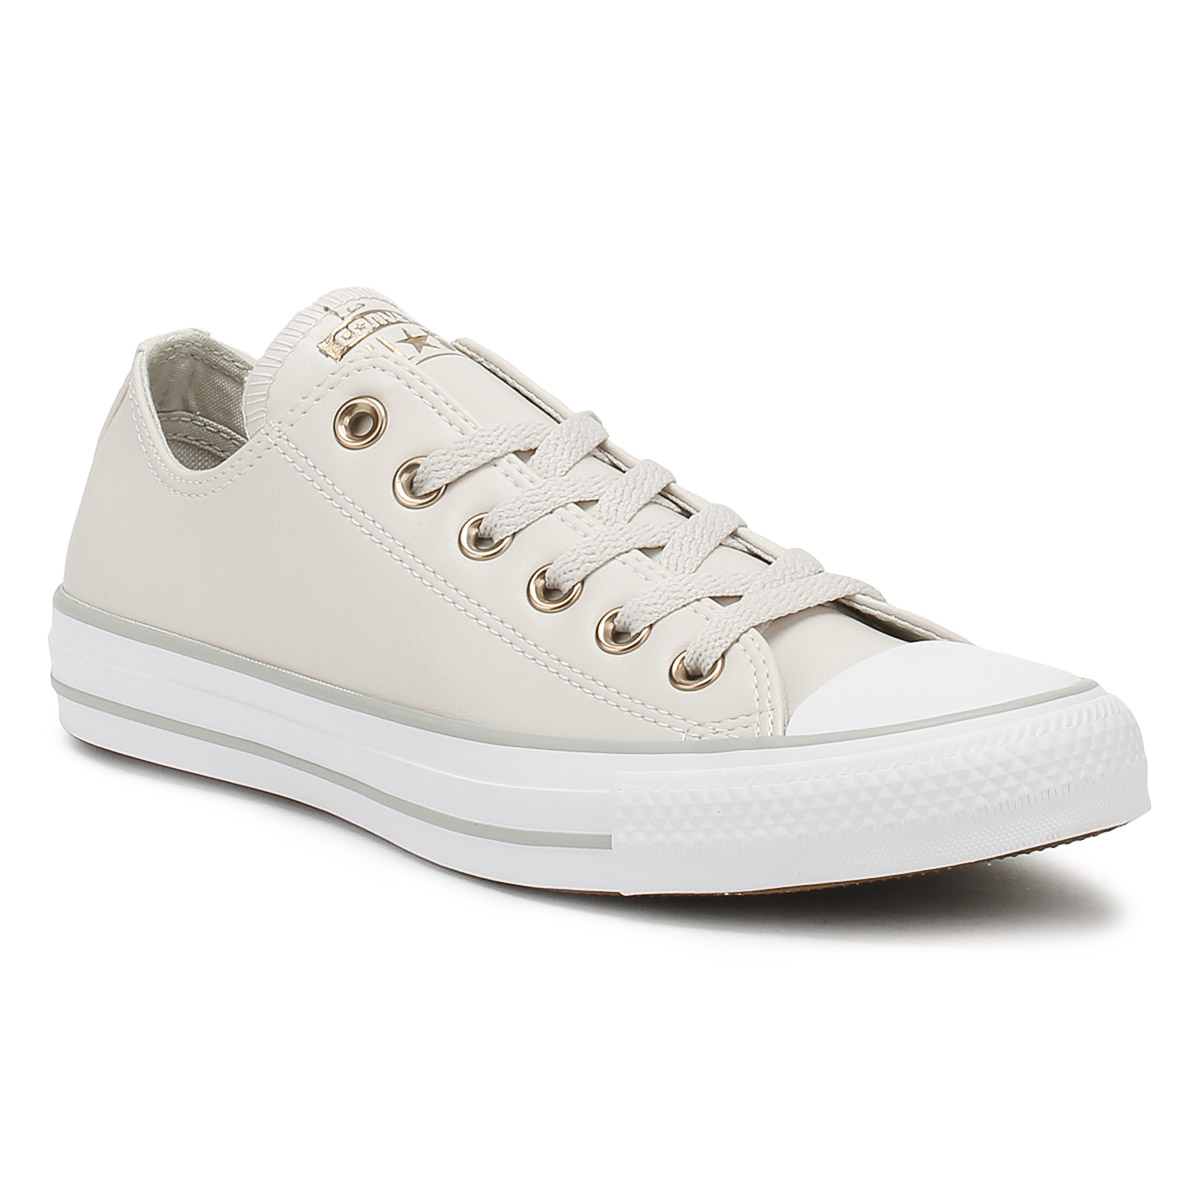 30b4f2c149ea0e Details about Converse Chuck Taylor All Star Womens Ox Trainers Pale Putty  Yellow Shoes